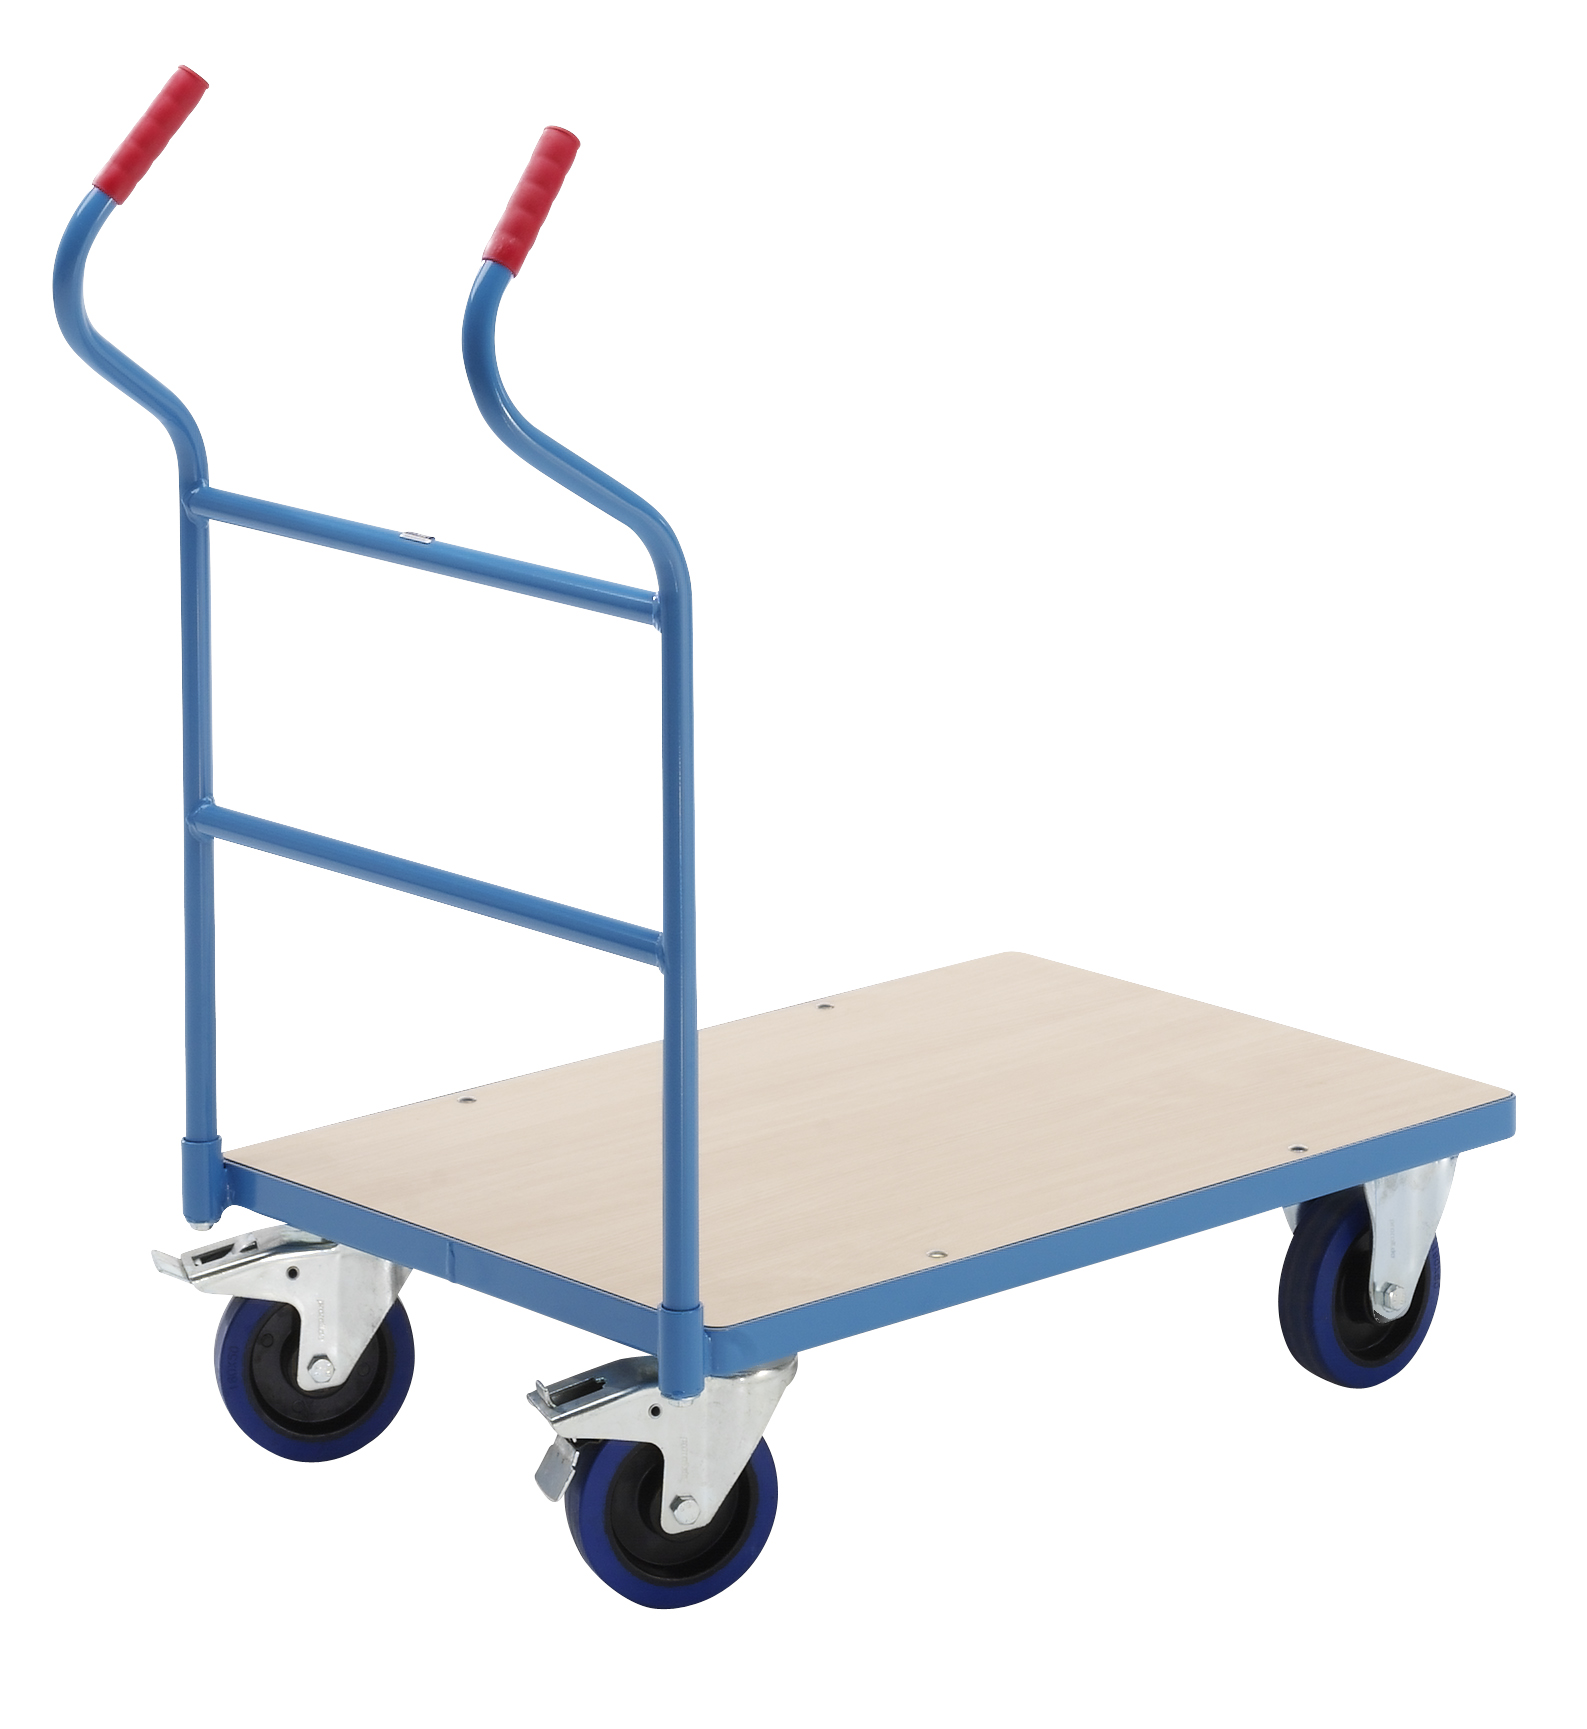 Ergonomic platform trolley 12600123